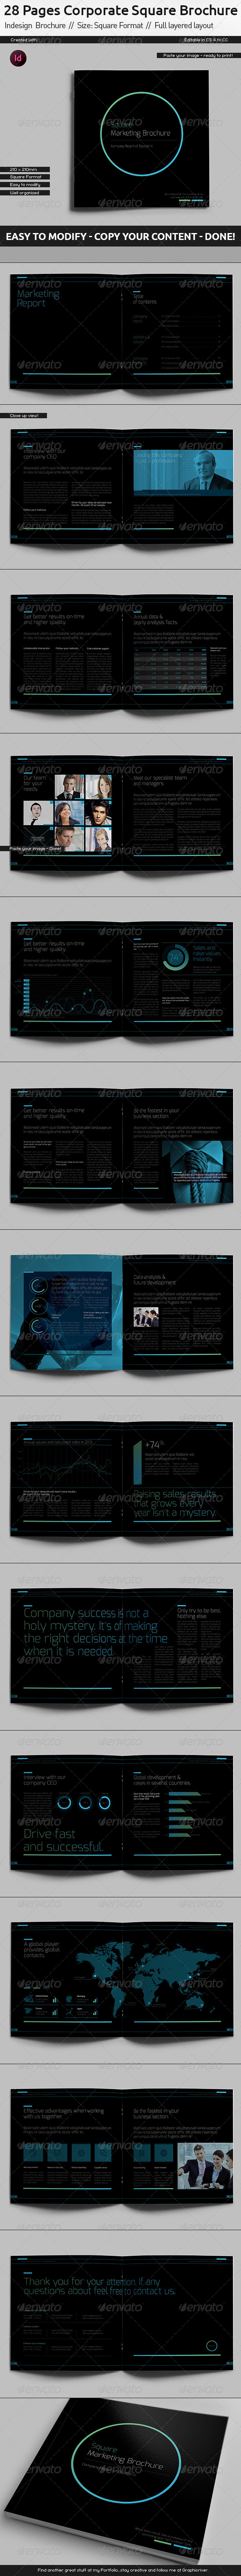 Black Company Brochure // Square Format - Corporate Brochures